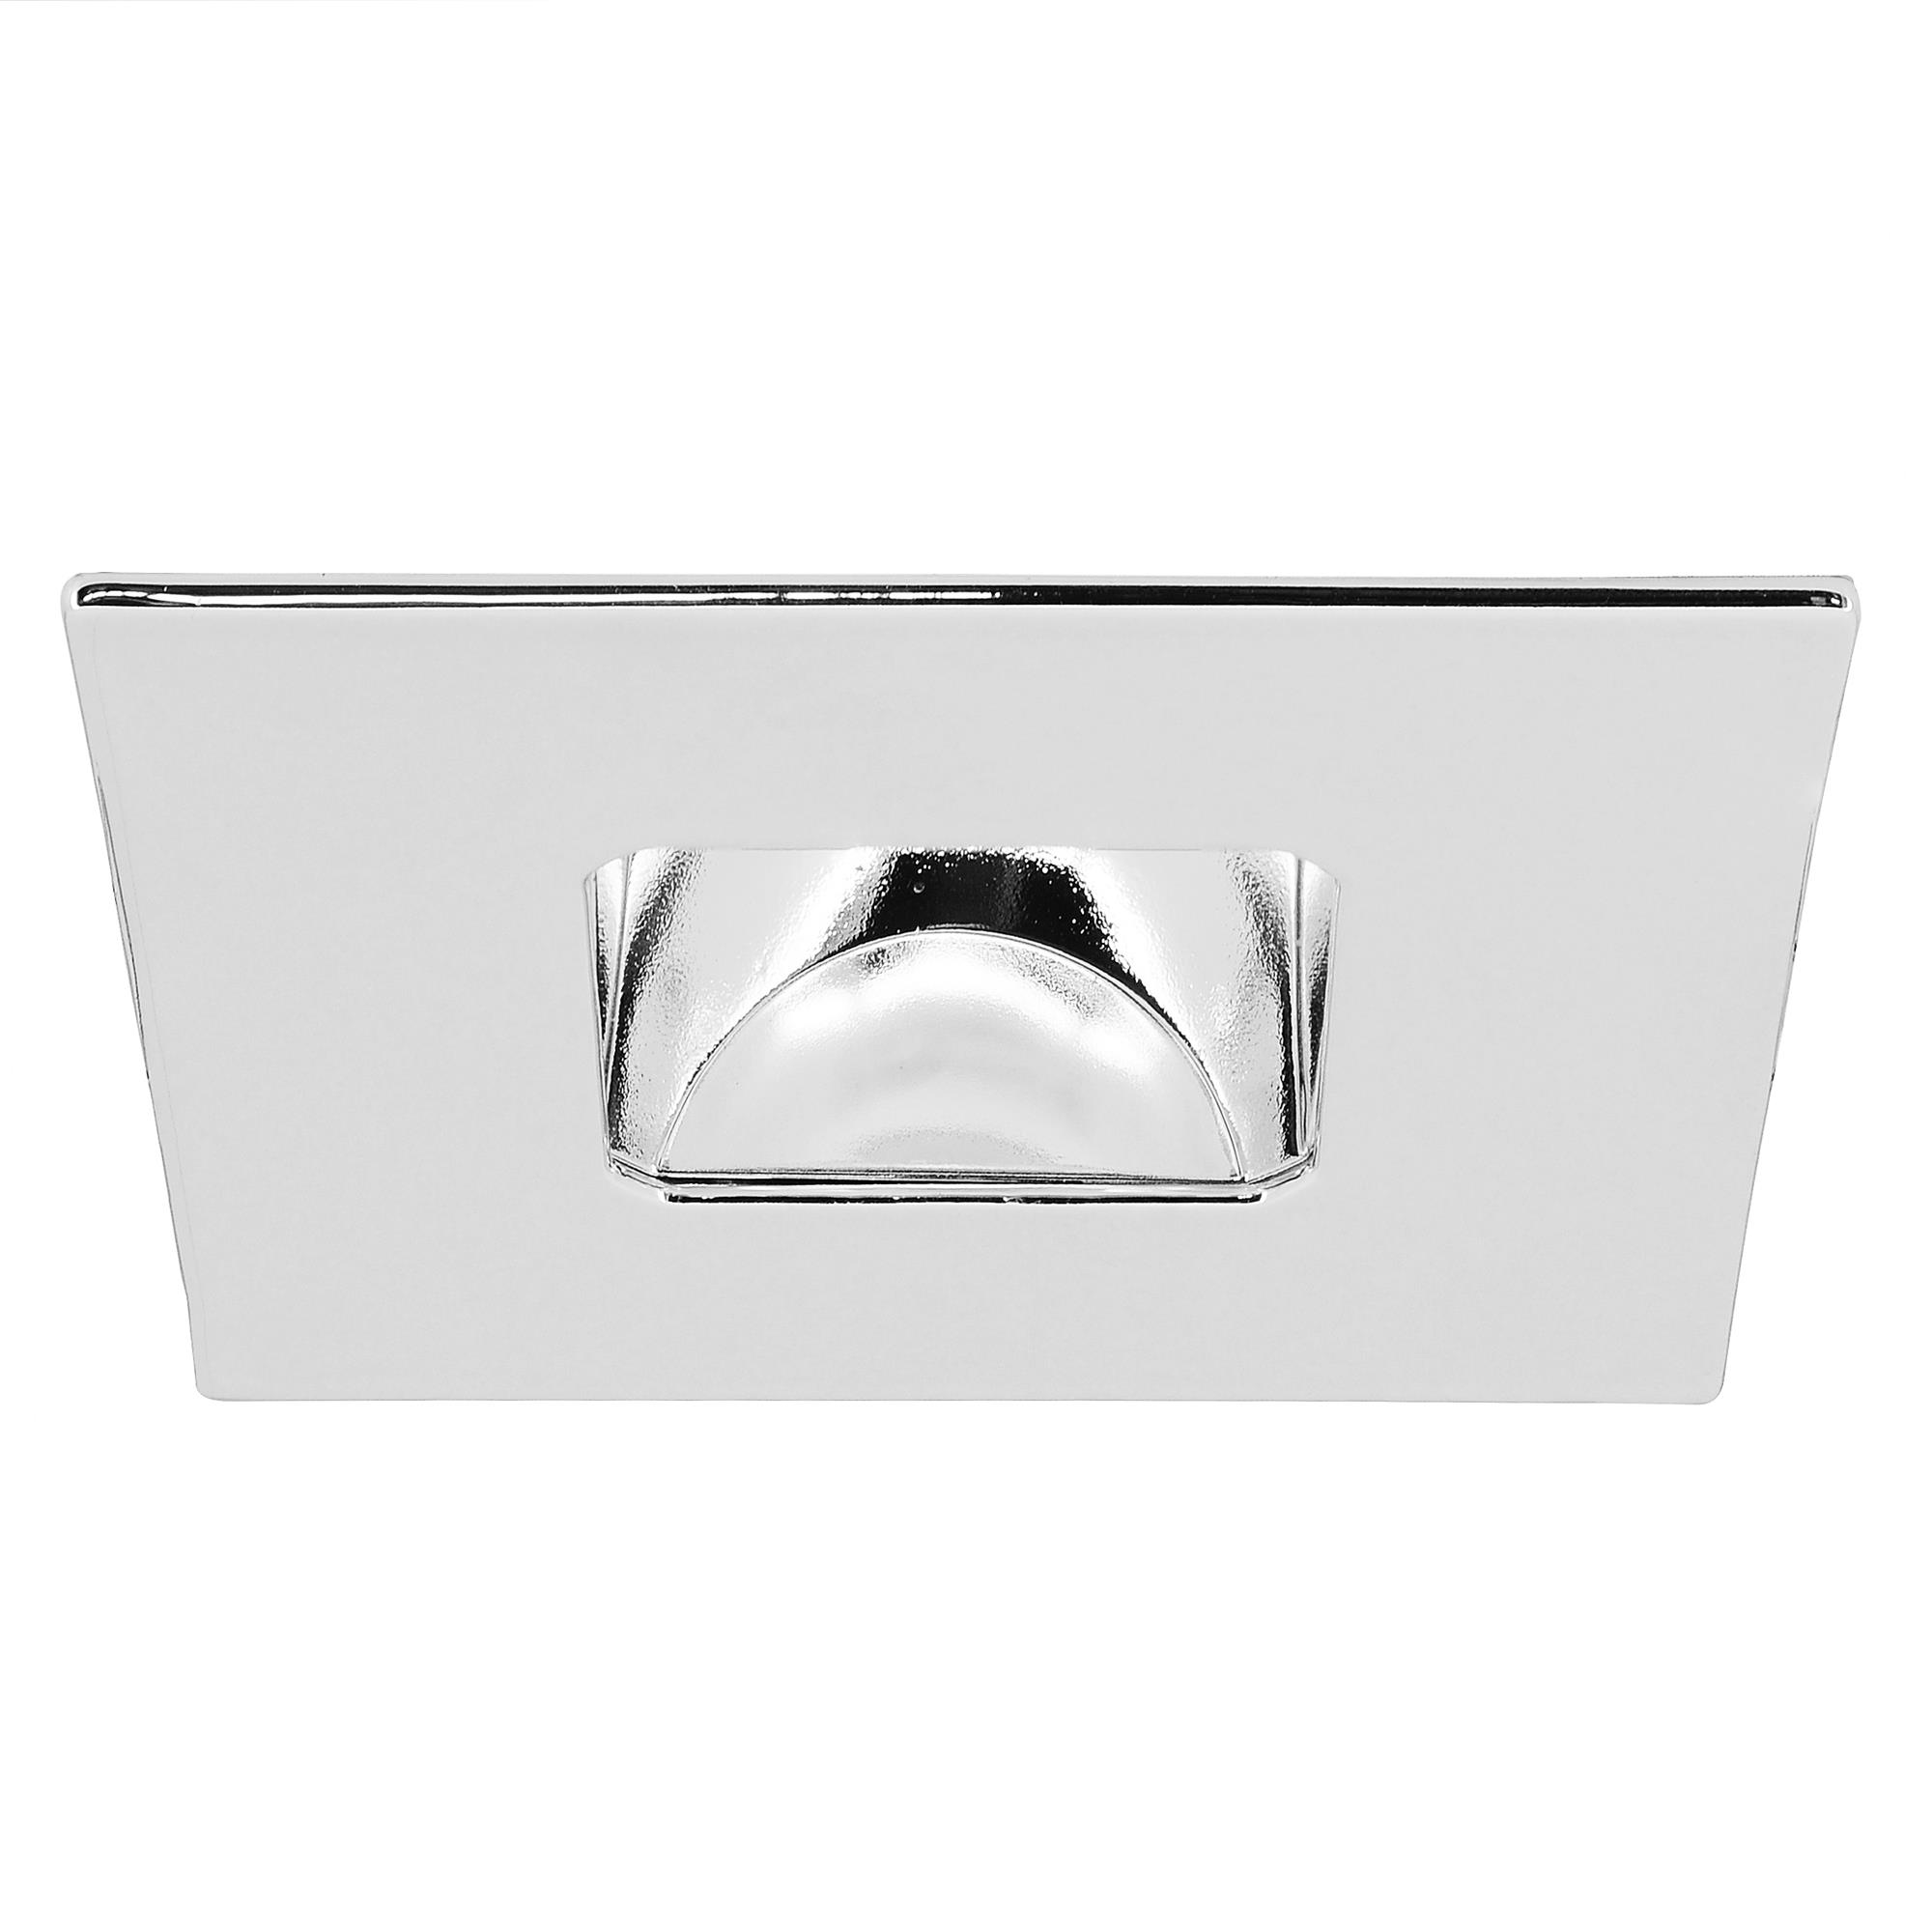 Blaze square fire rated fixed led downlight warm white 2700k 7w 75w chrome